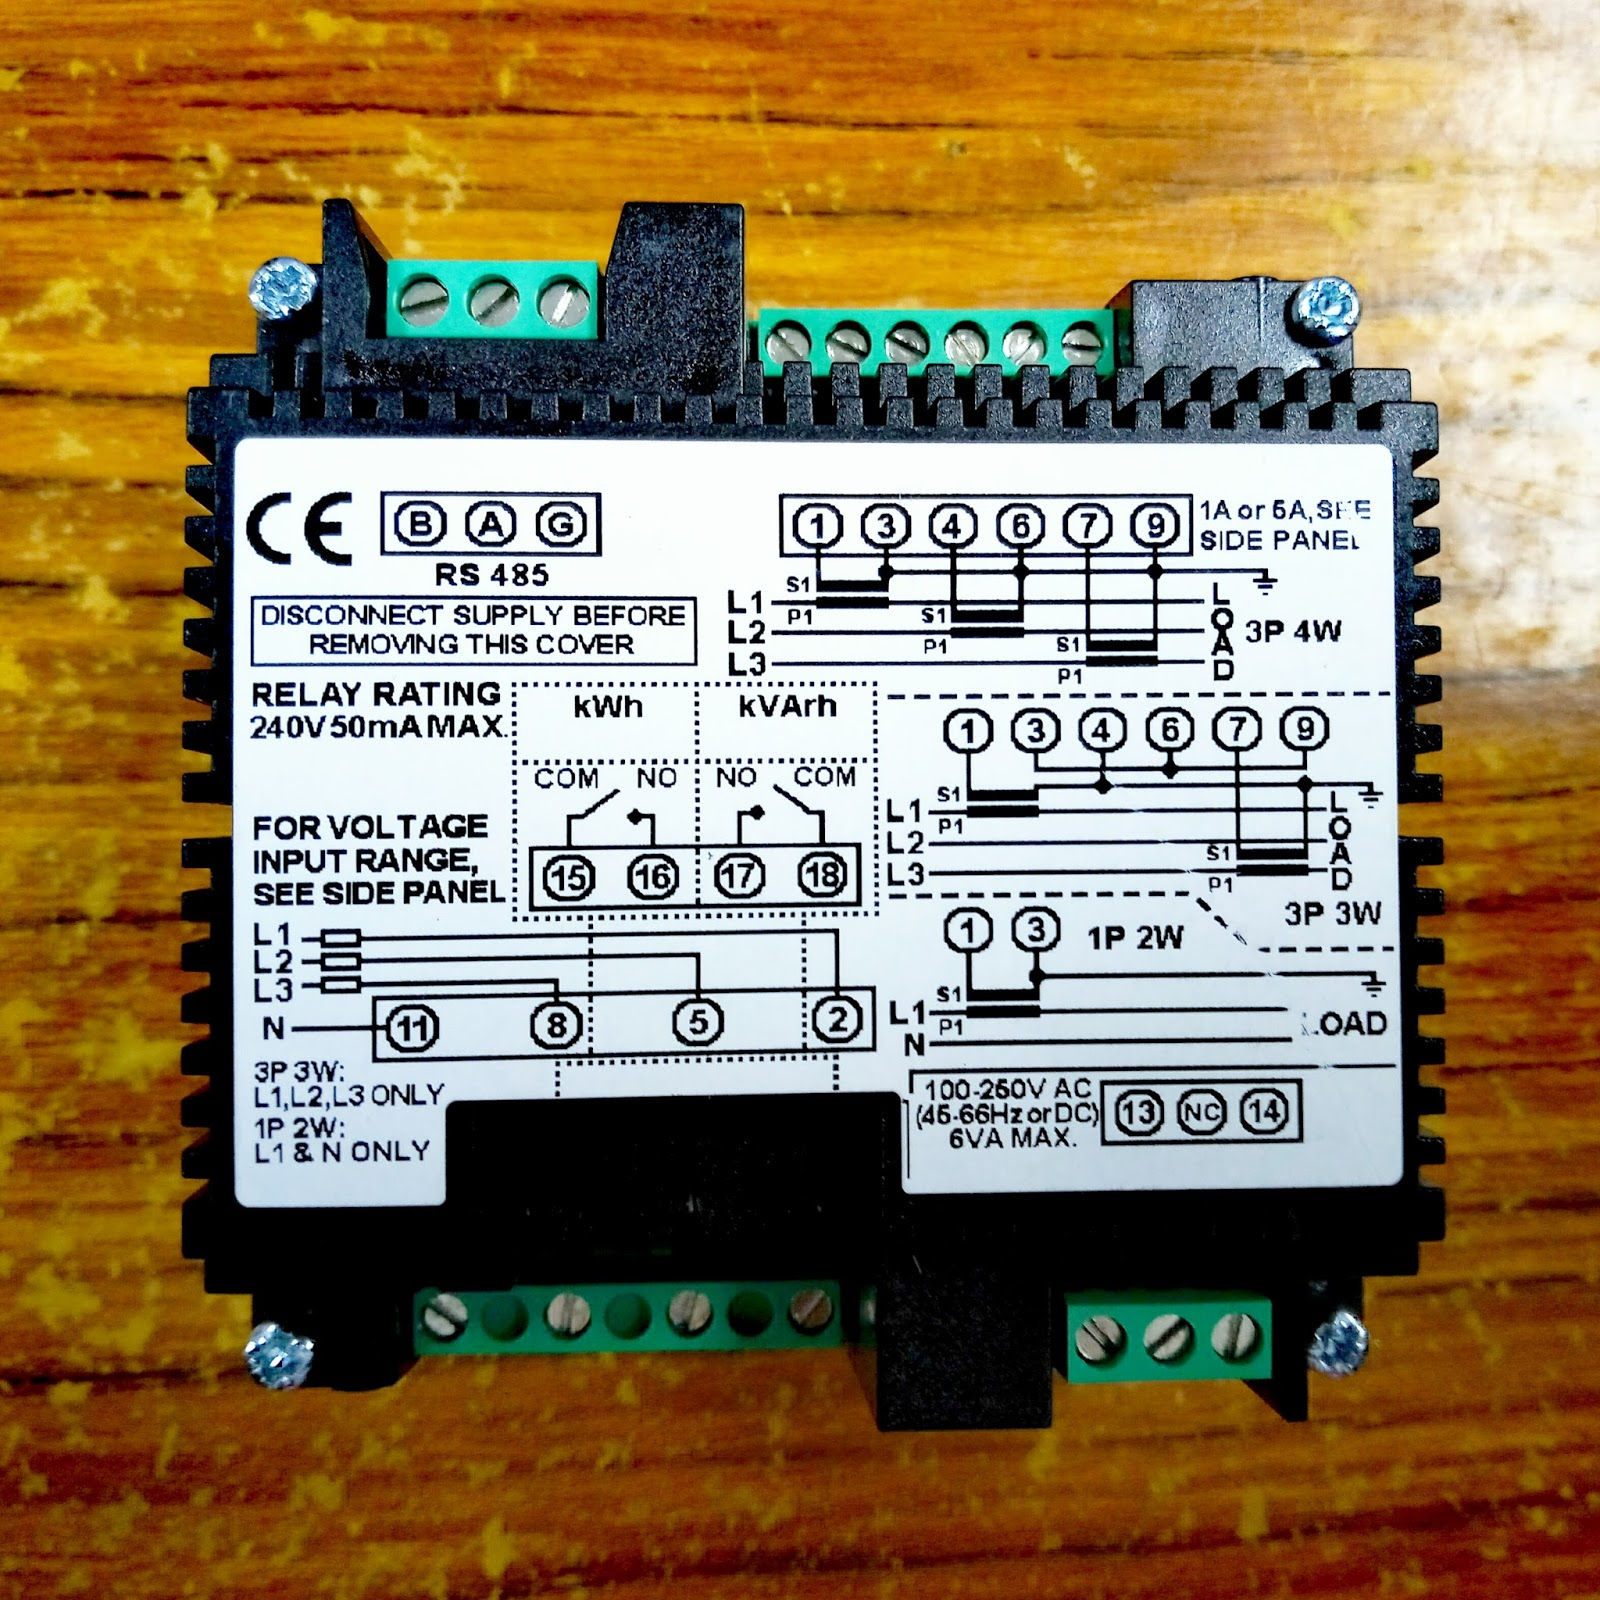 P70522 153128%25281%2529 興昌電機 hing cheong electric crompton power meter integra 1630 integra 1630 wiring diagram at crackthecode.co